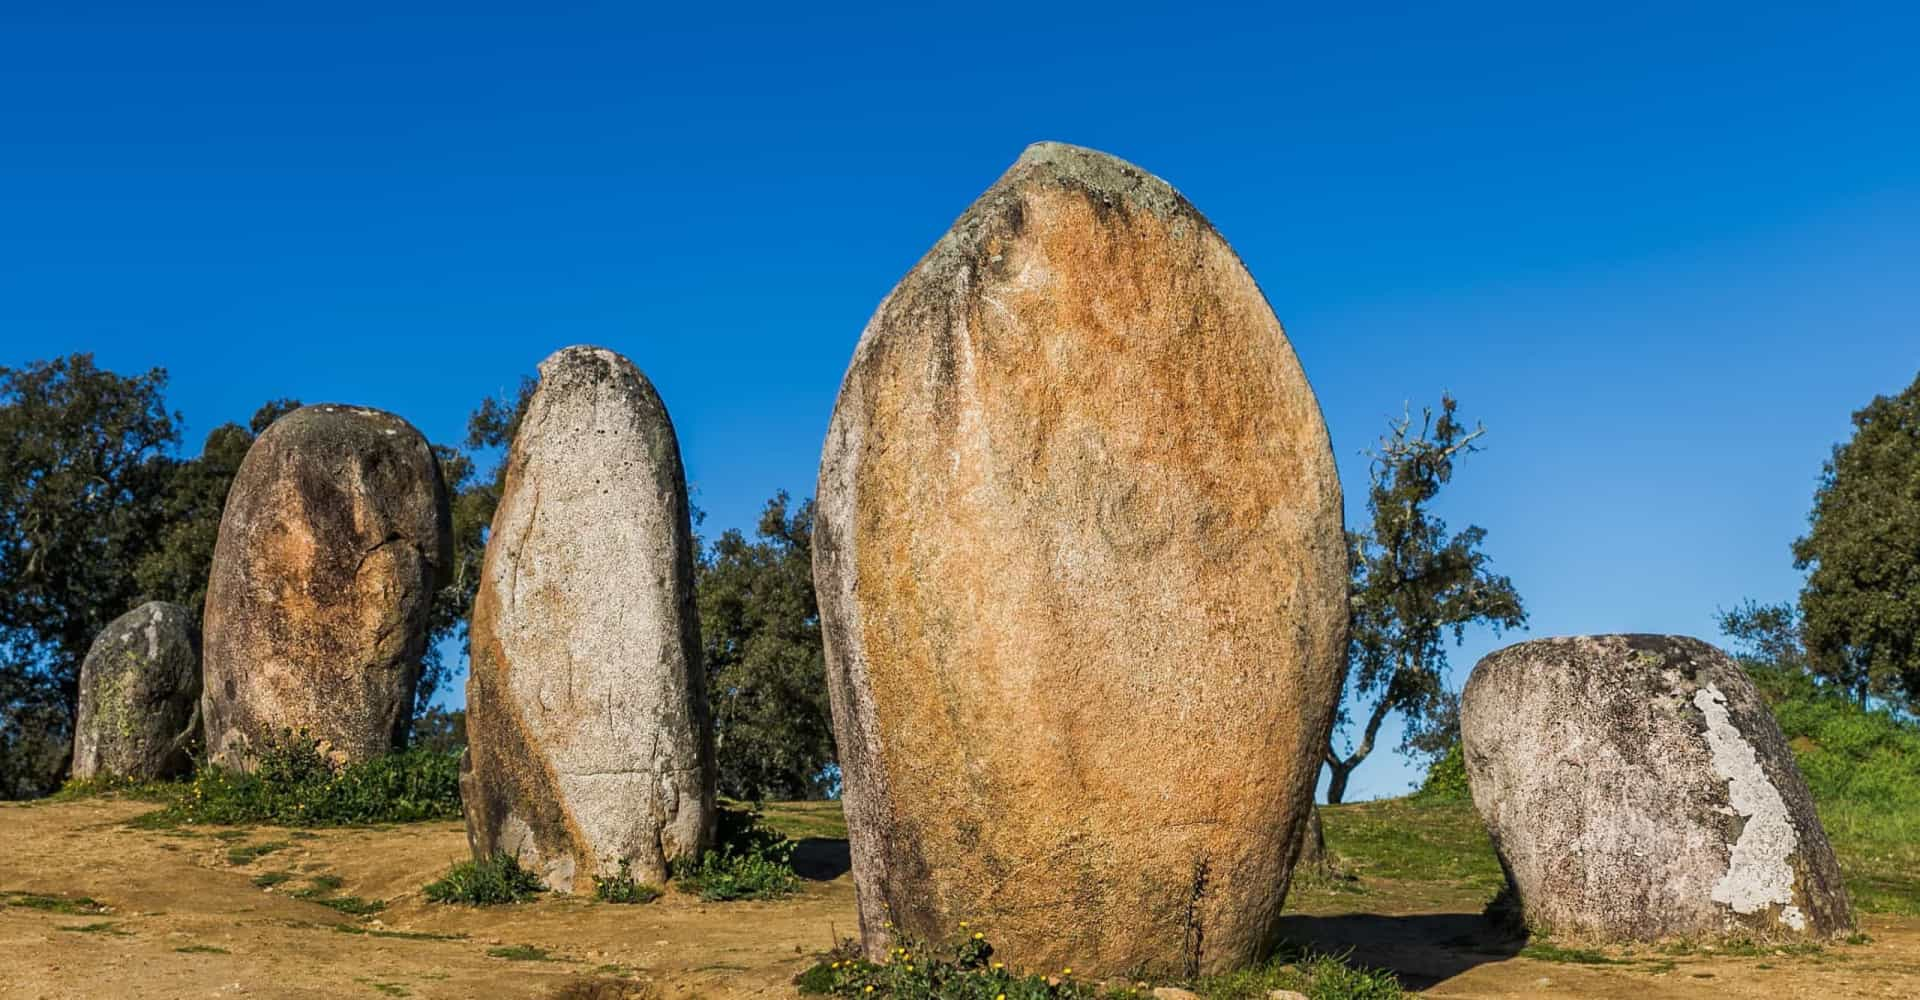 Europe's most fascinating megalithic monuments